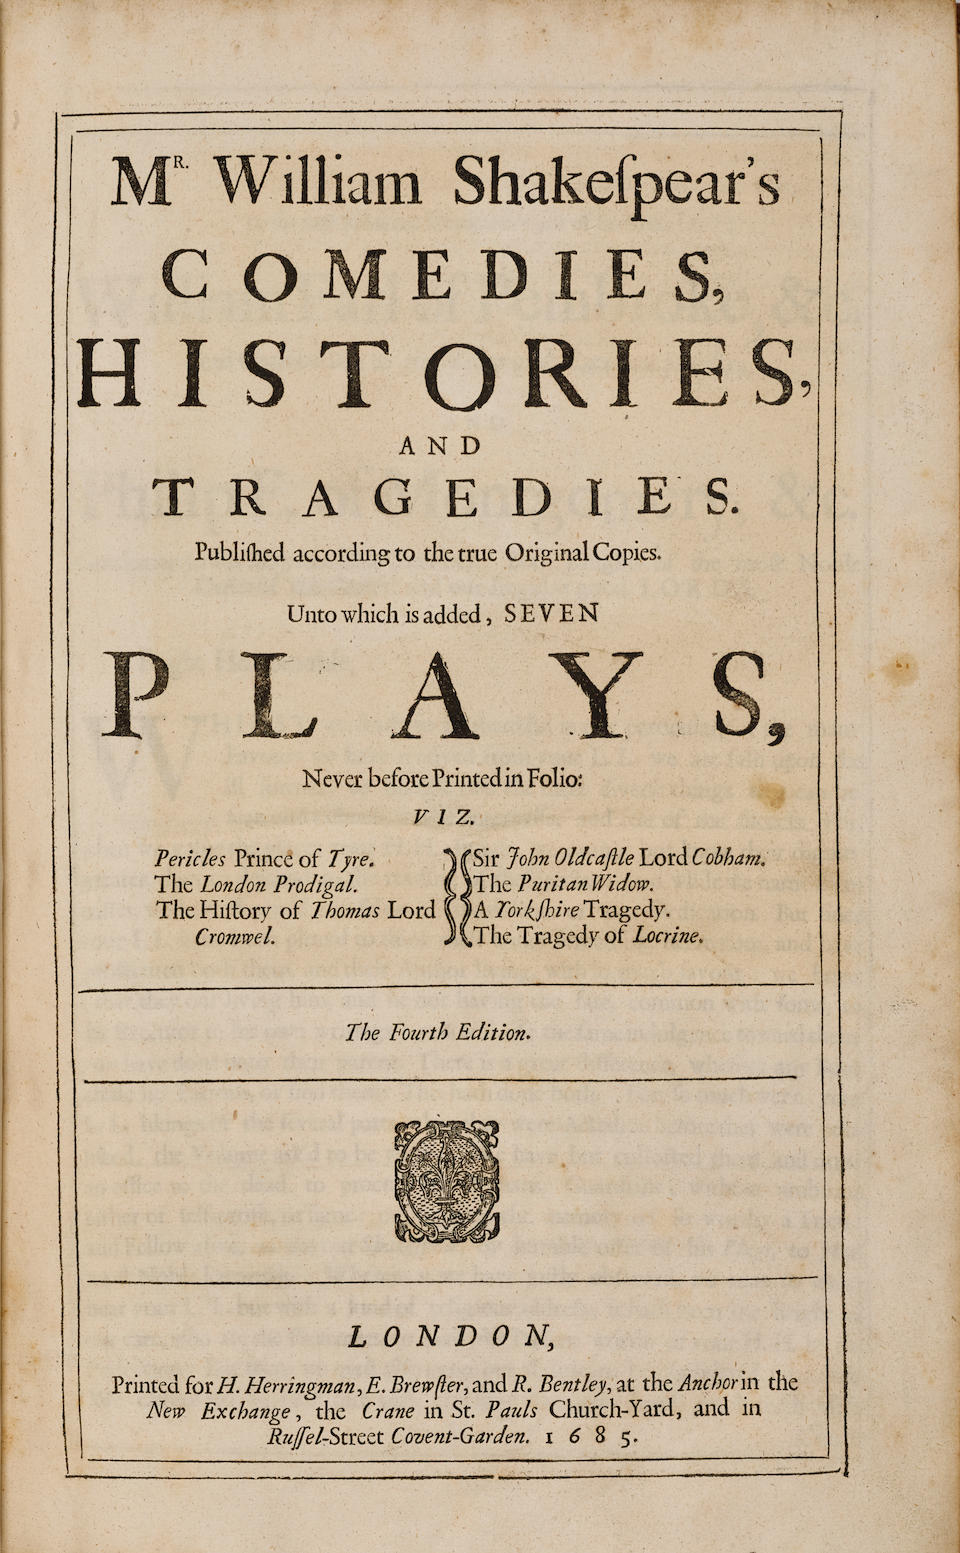 SHAKESPEARE, WILLIAM. 1564-1616. Comedies, Histories, and Tragedies. Published according to the true Original Copies. Unto which is added, Seven Plays, never before Printed in Folio. London: [Robert Roberts and others for] H. Herringman, E. Brewster, and R. Bentley, 1685.